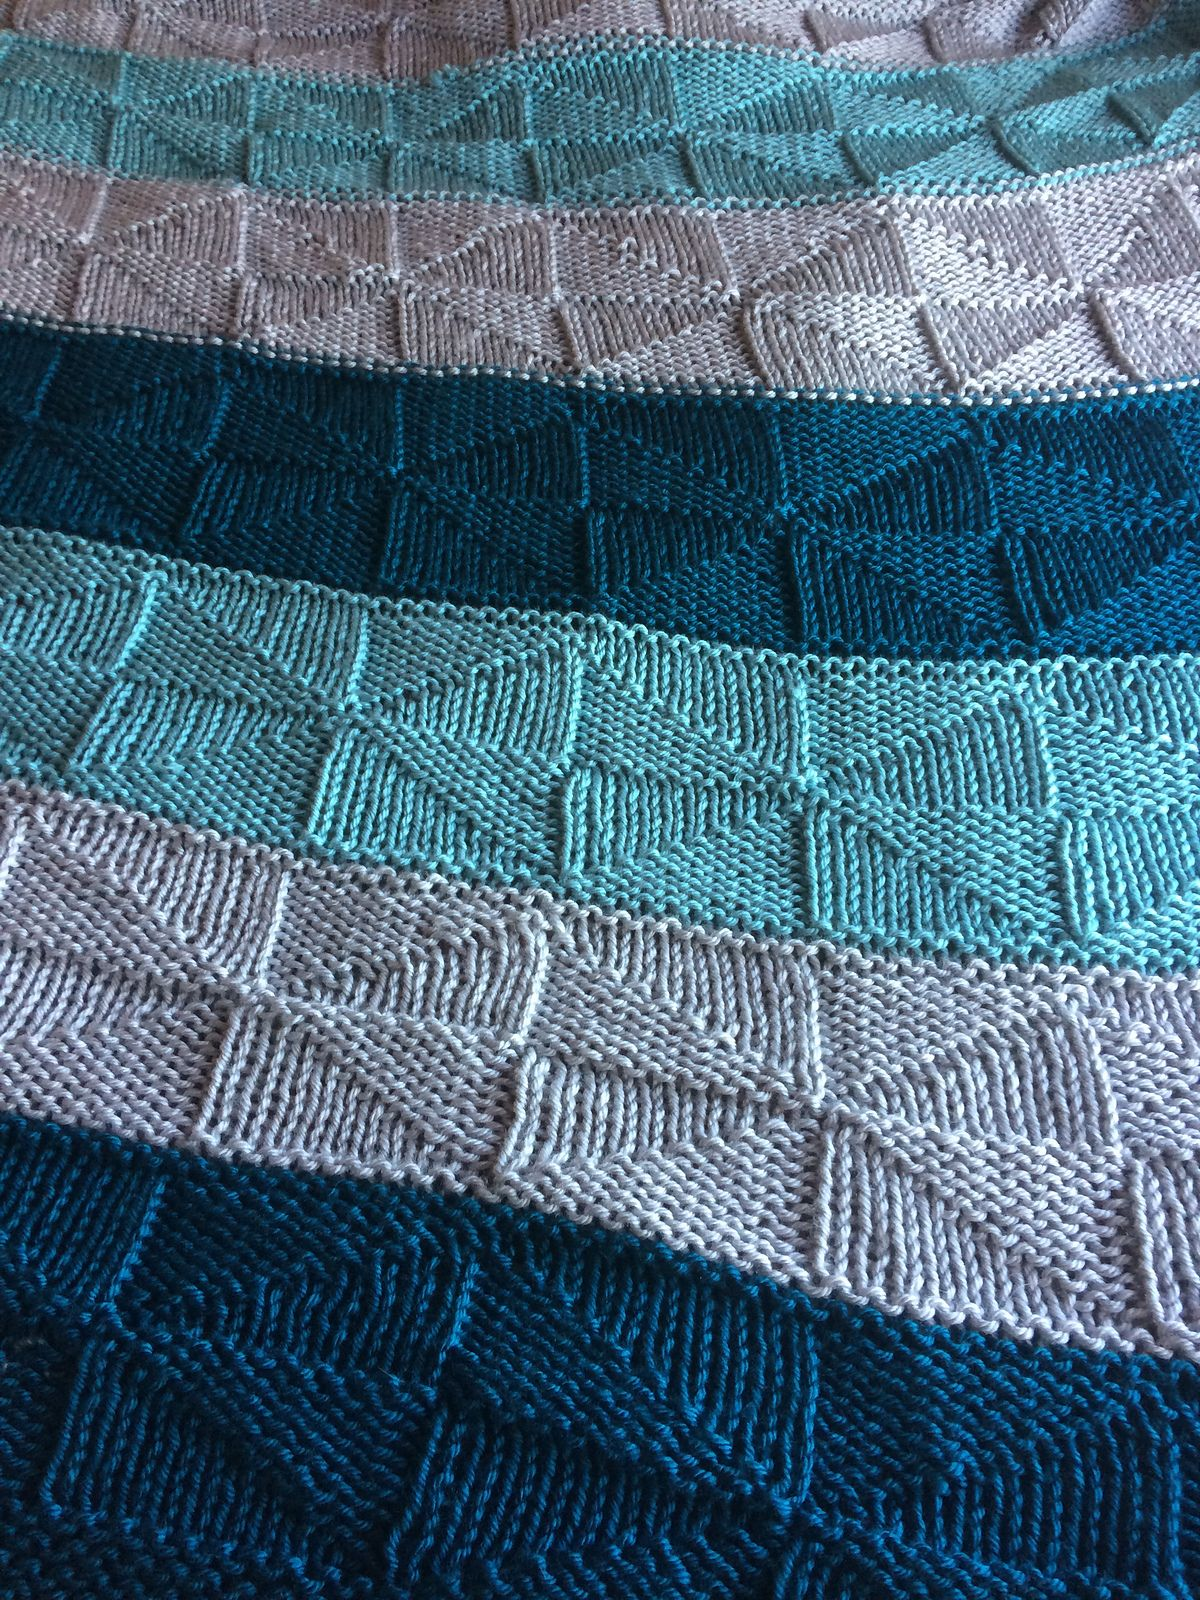 Free knitting pattern for reversible windmill blanket this easy free knitting pattern for reversible windmill blanket this easy college afghan is knit with a bankloansurffo Images